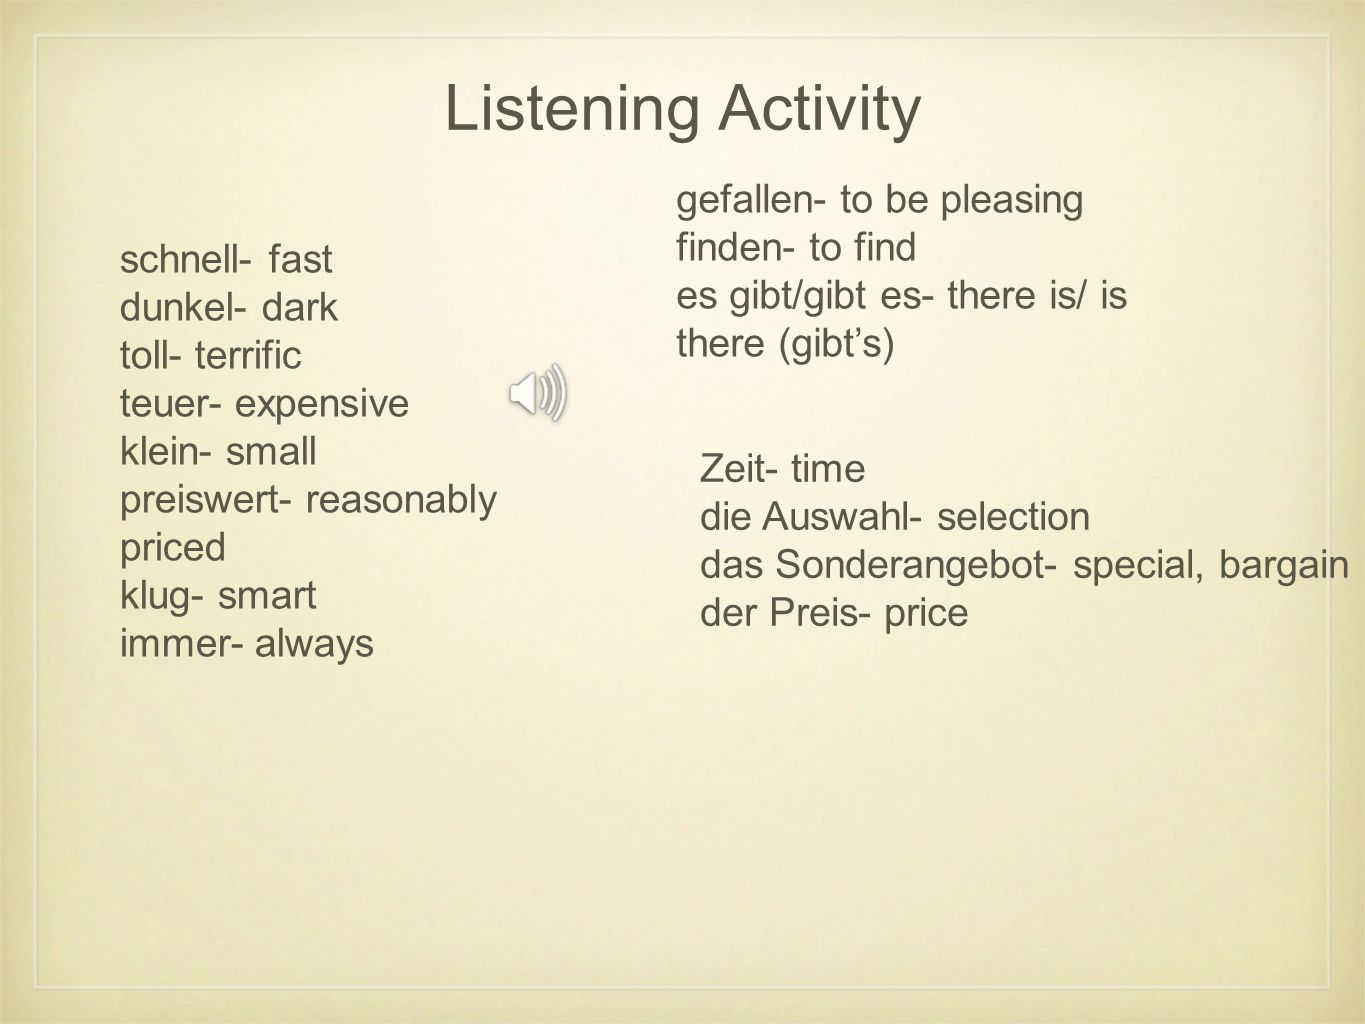 Listening Activity gefallen- to be pleasing finden- to find